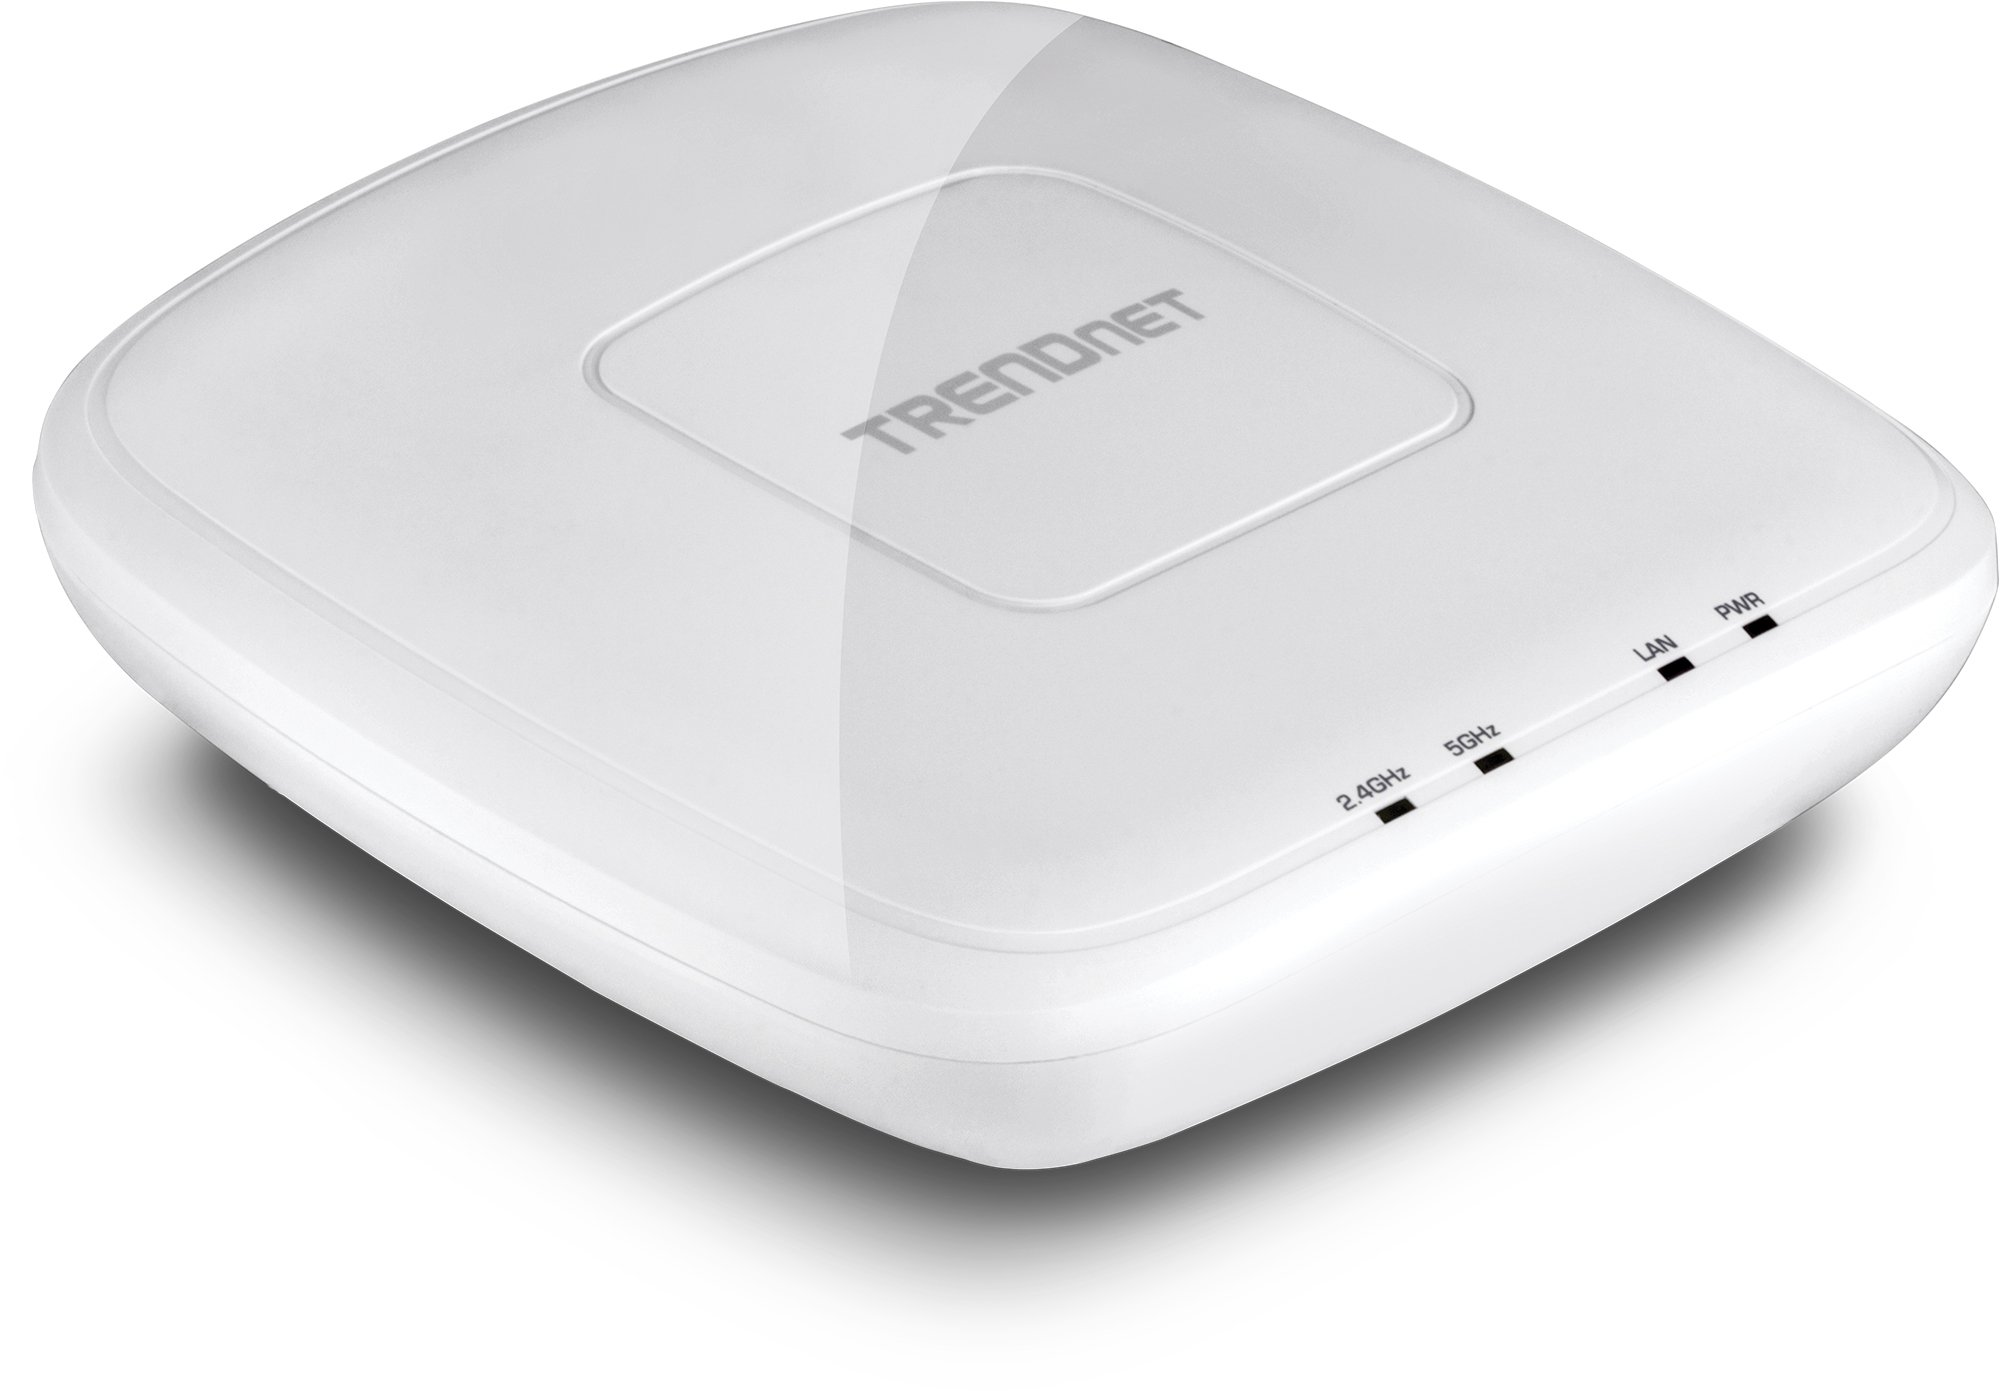 TRENDnet AC1750 Dual Band PoE Access Point, 1300Mbps WiFi AC+450 Mbps WiFi N, WDS Bridge, WDS Station, Repeater Modes, Band Steering, WiFi Traffic Shaping, Up to 8 SSIDs-16 Total, IPv6, TEW-825DAP by TRENDnet (Image #1)